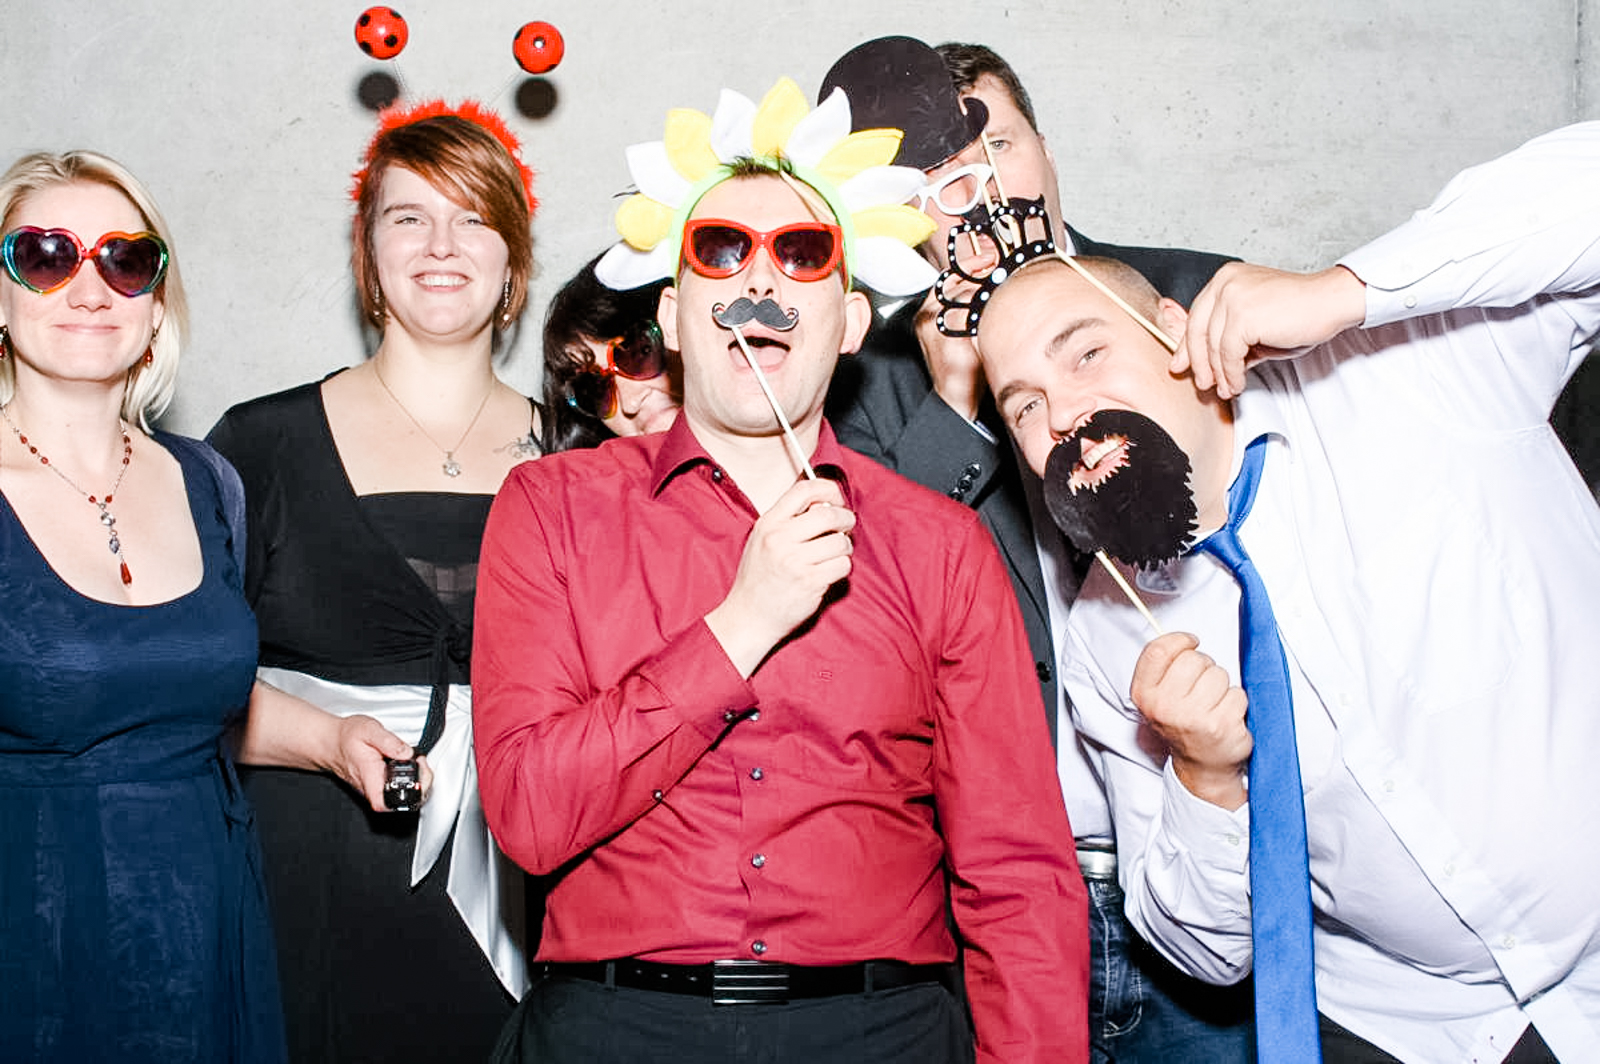 Monstergraphie_Photobooth_Zeche_Zollverein-21.jpg?fit=1600%2C1064